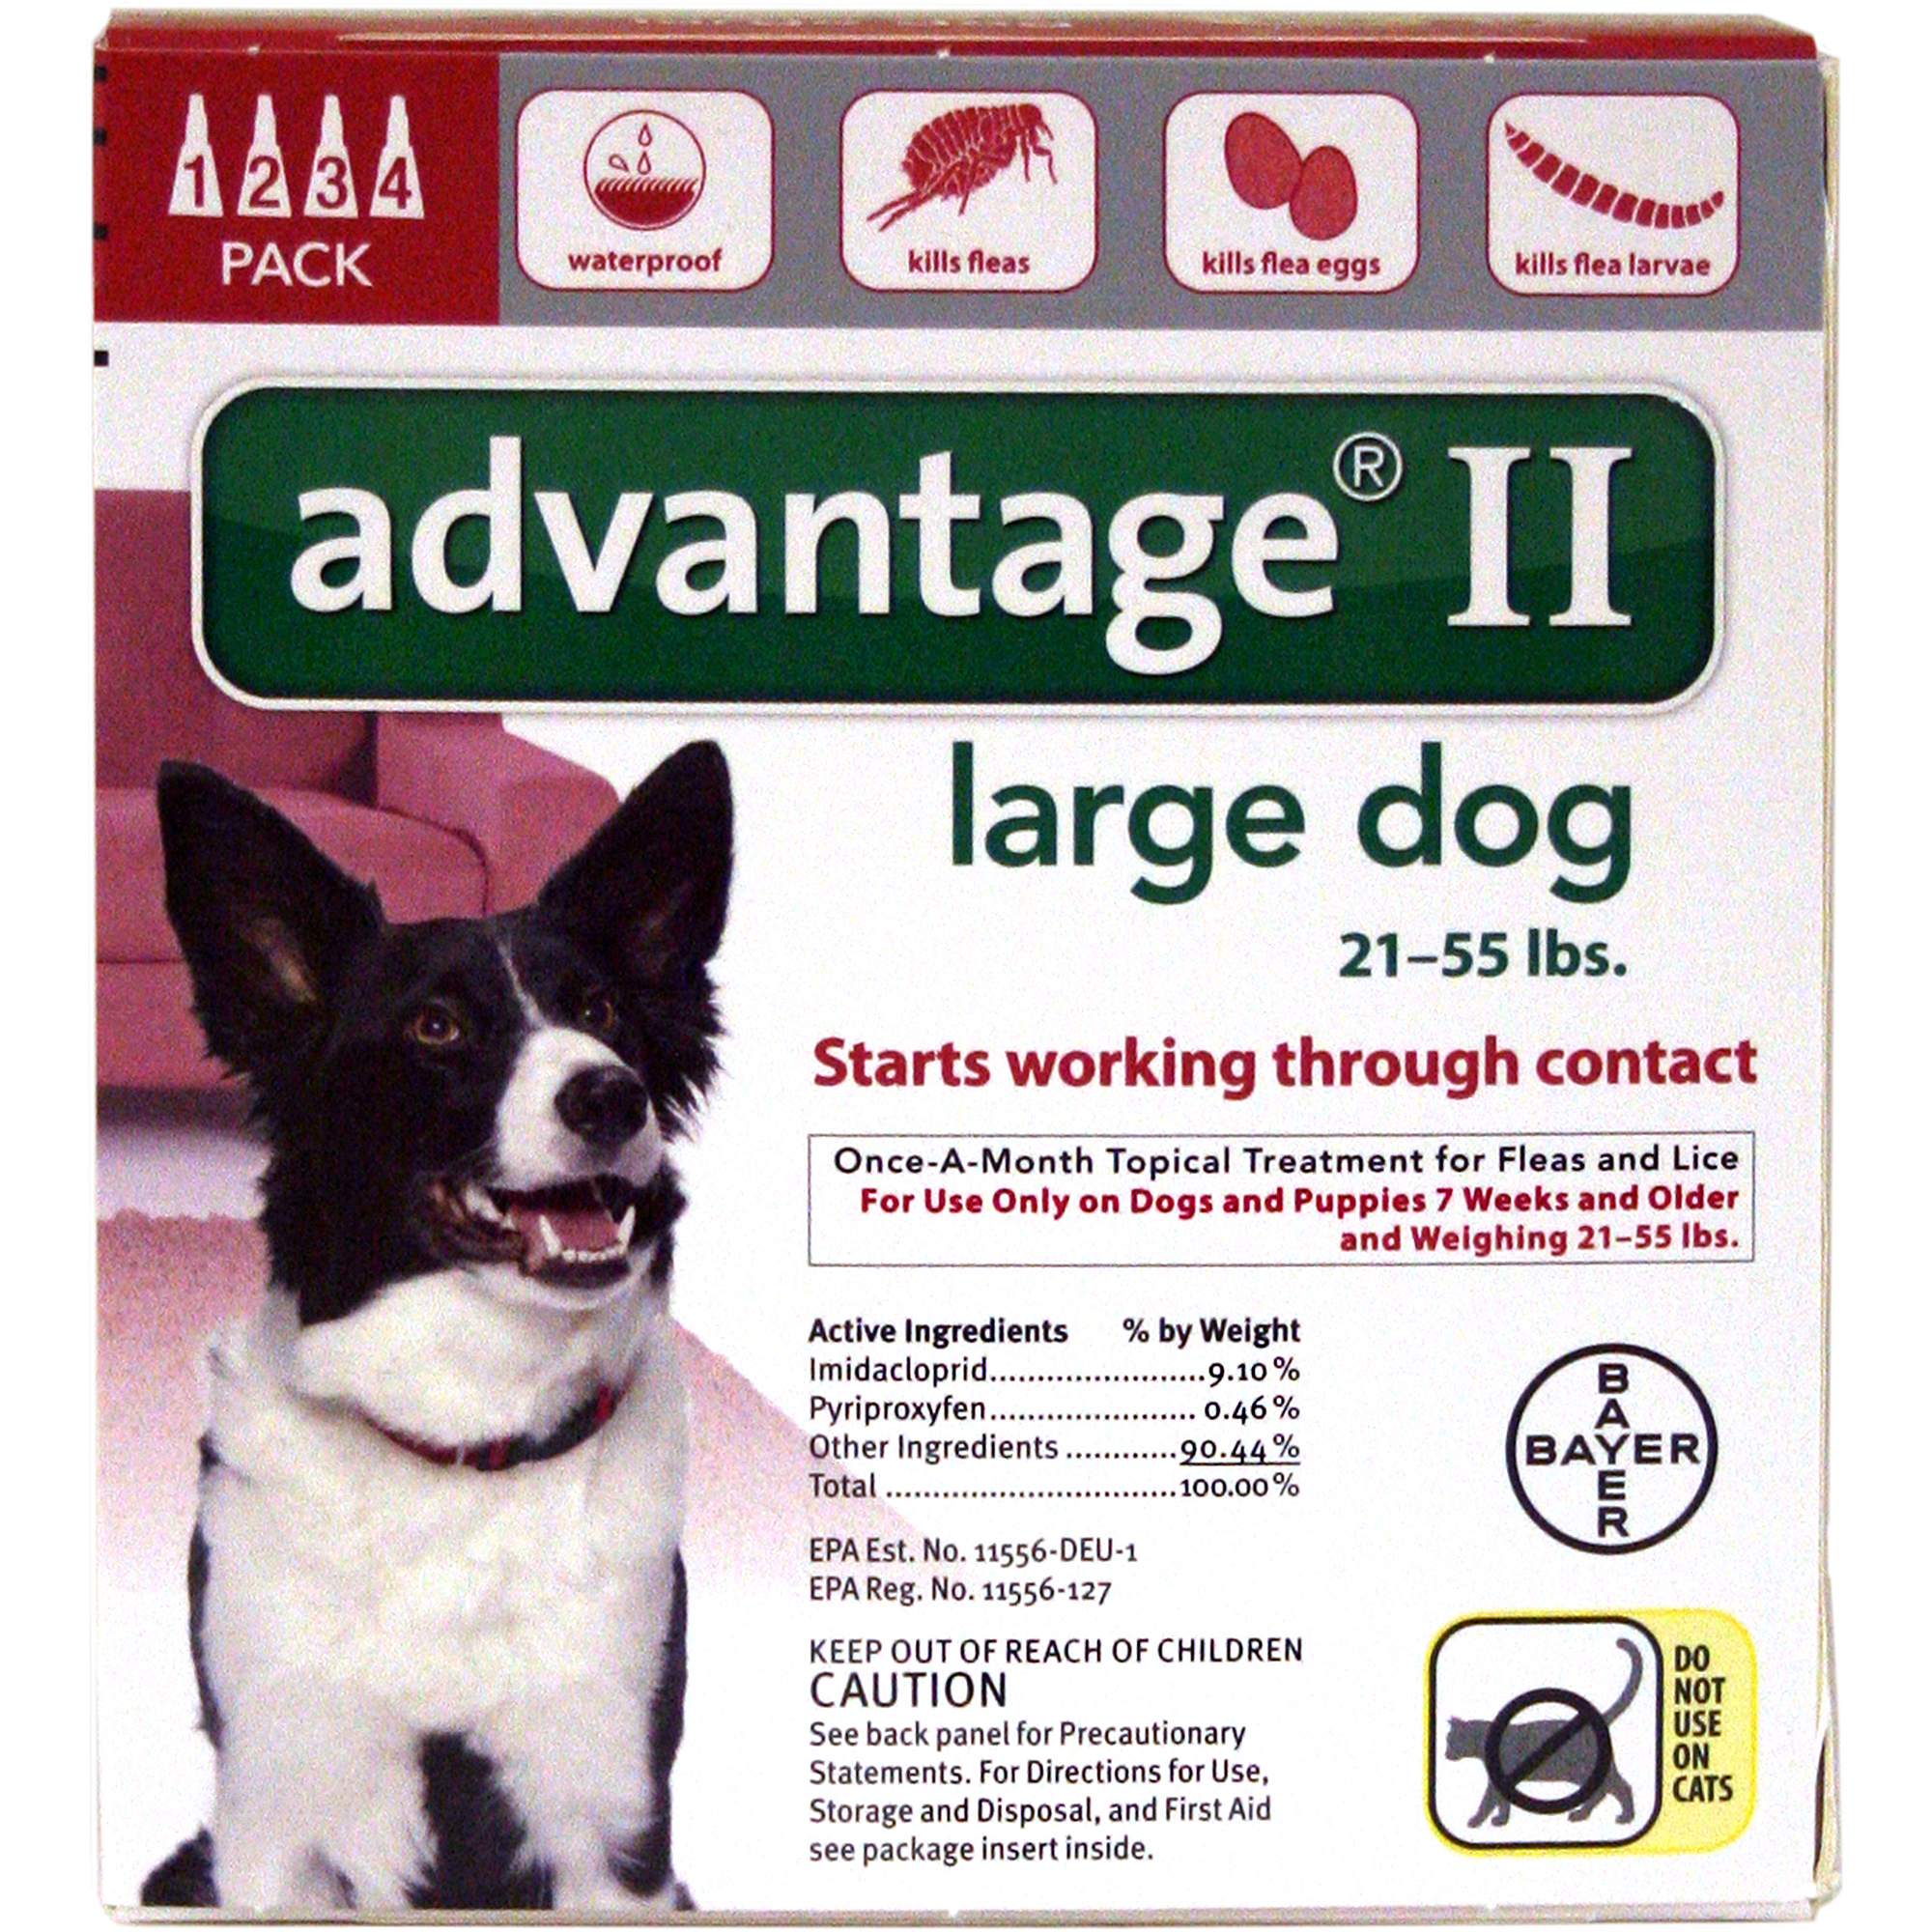 Advantage II Flea and Lice Topical Treatment for Dogs, 21-55 lbs, 4-Count